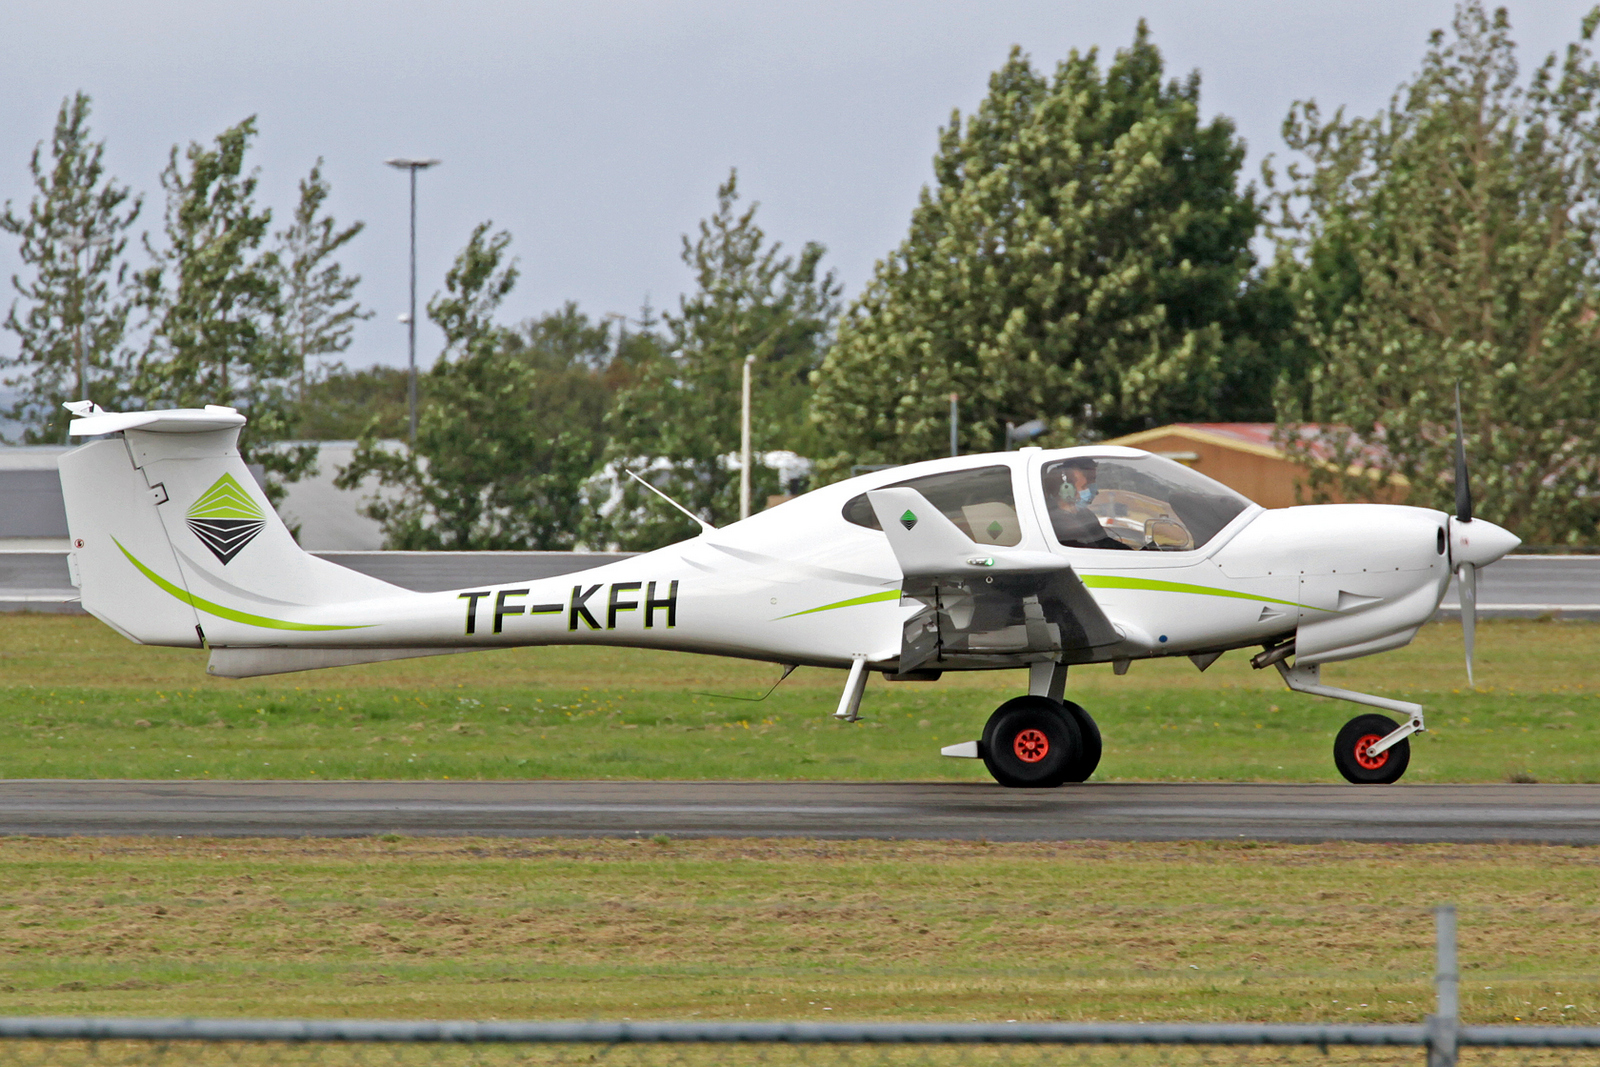 Keilir Aviation Academy Diamond Aircraft DA-40NG TF-KFH, RKV, 10. August 2020